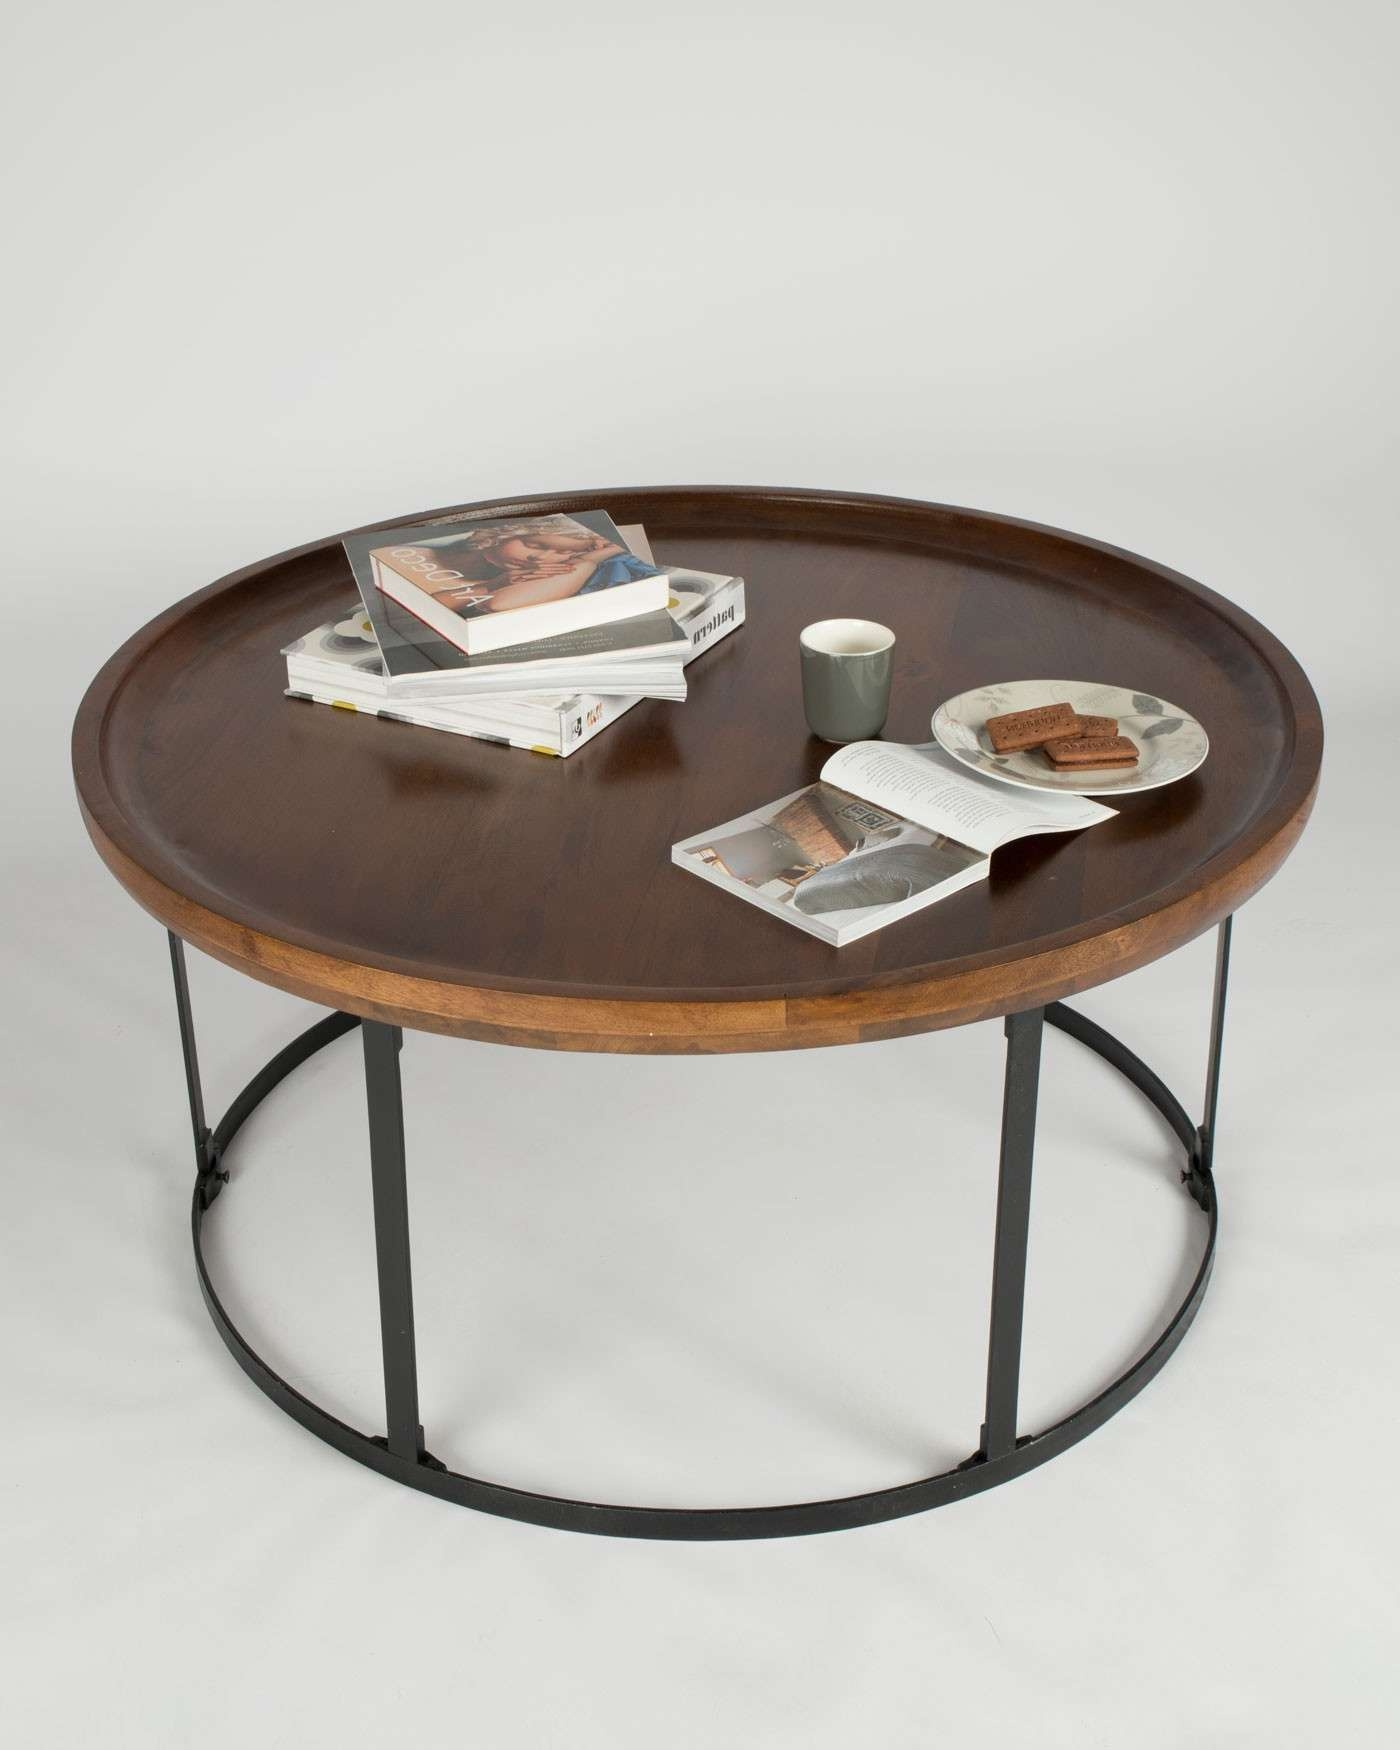 Small Dark Wood Coffee Tables 20 Collection Of Square Dark Wood Coffee Table